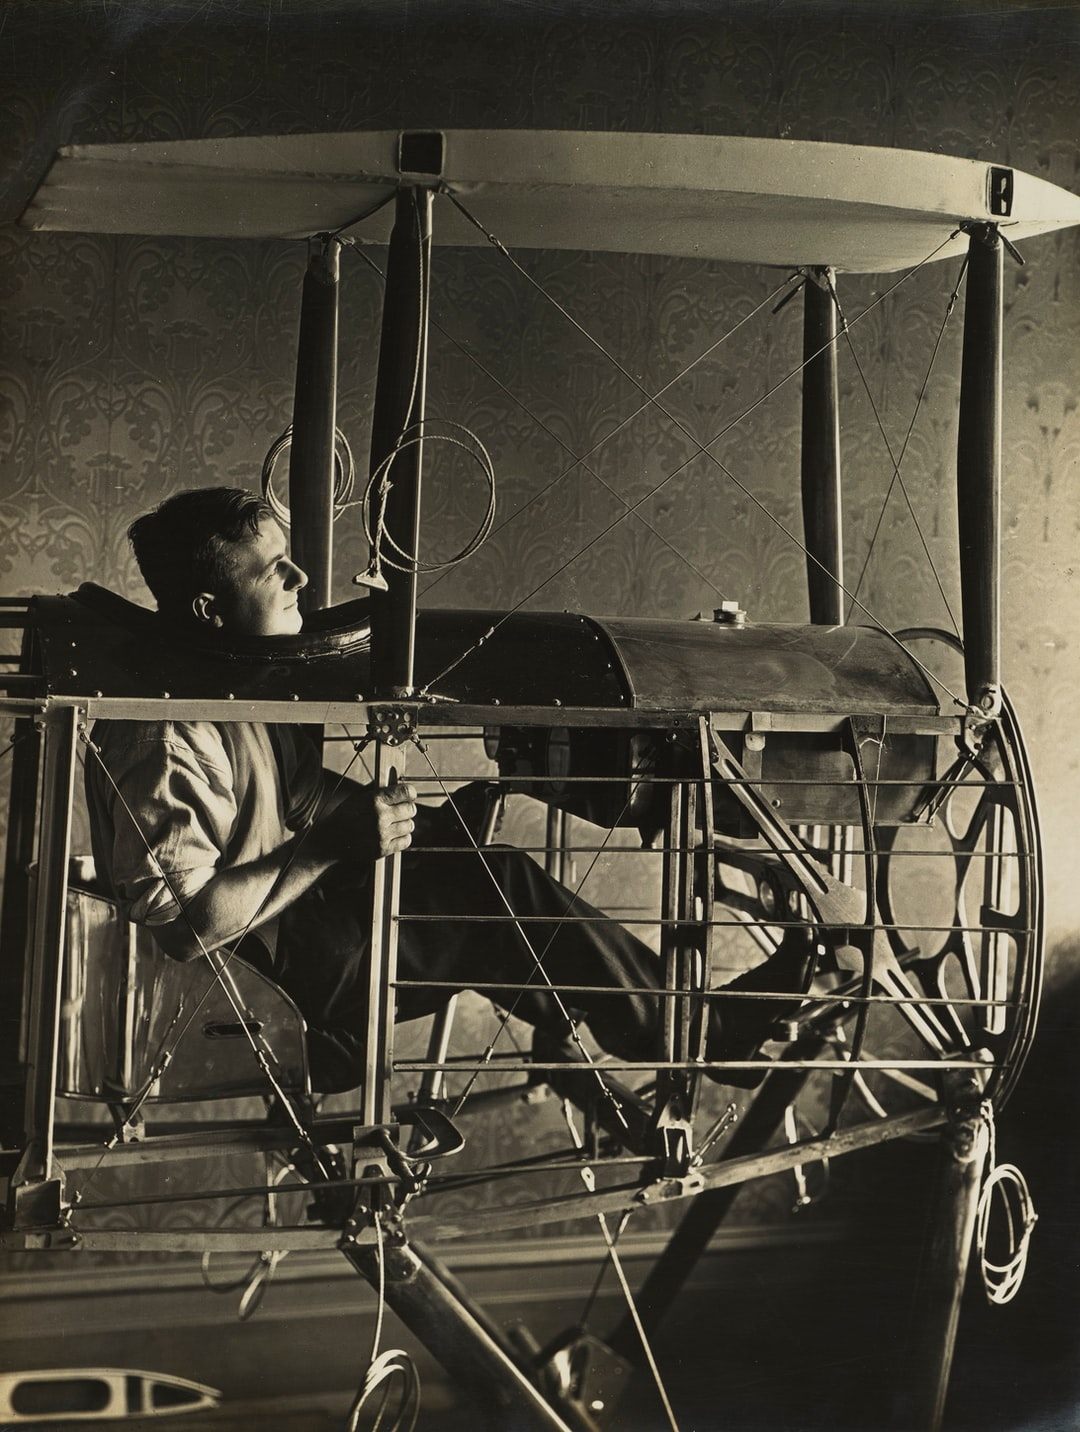 Basil Watson Seated in Cockpit of Partially Constructed Biplane Fuselage in the Family Home, Elsternwick, Victoria, 1916